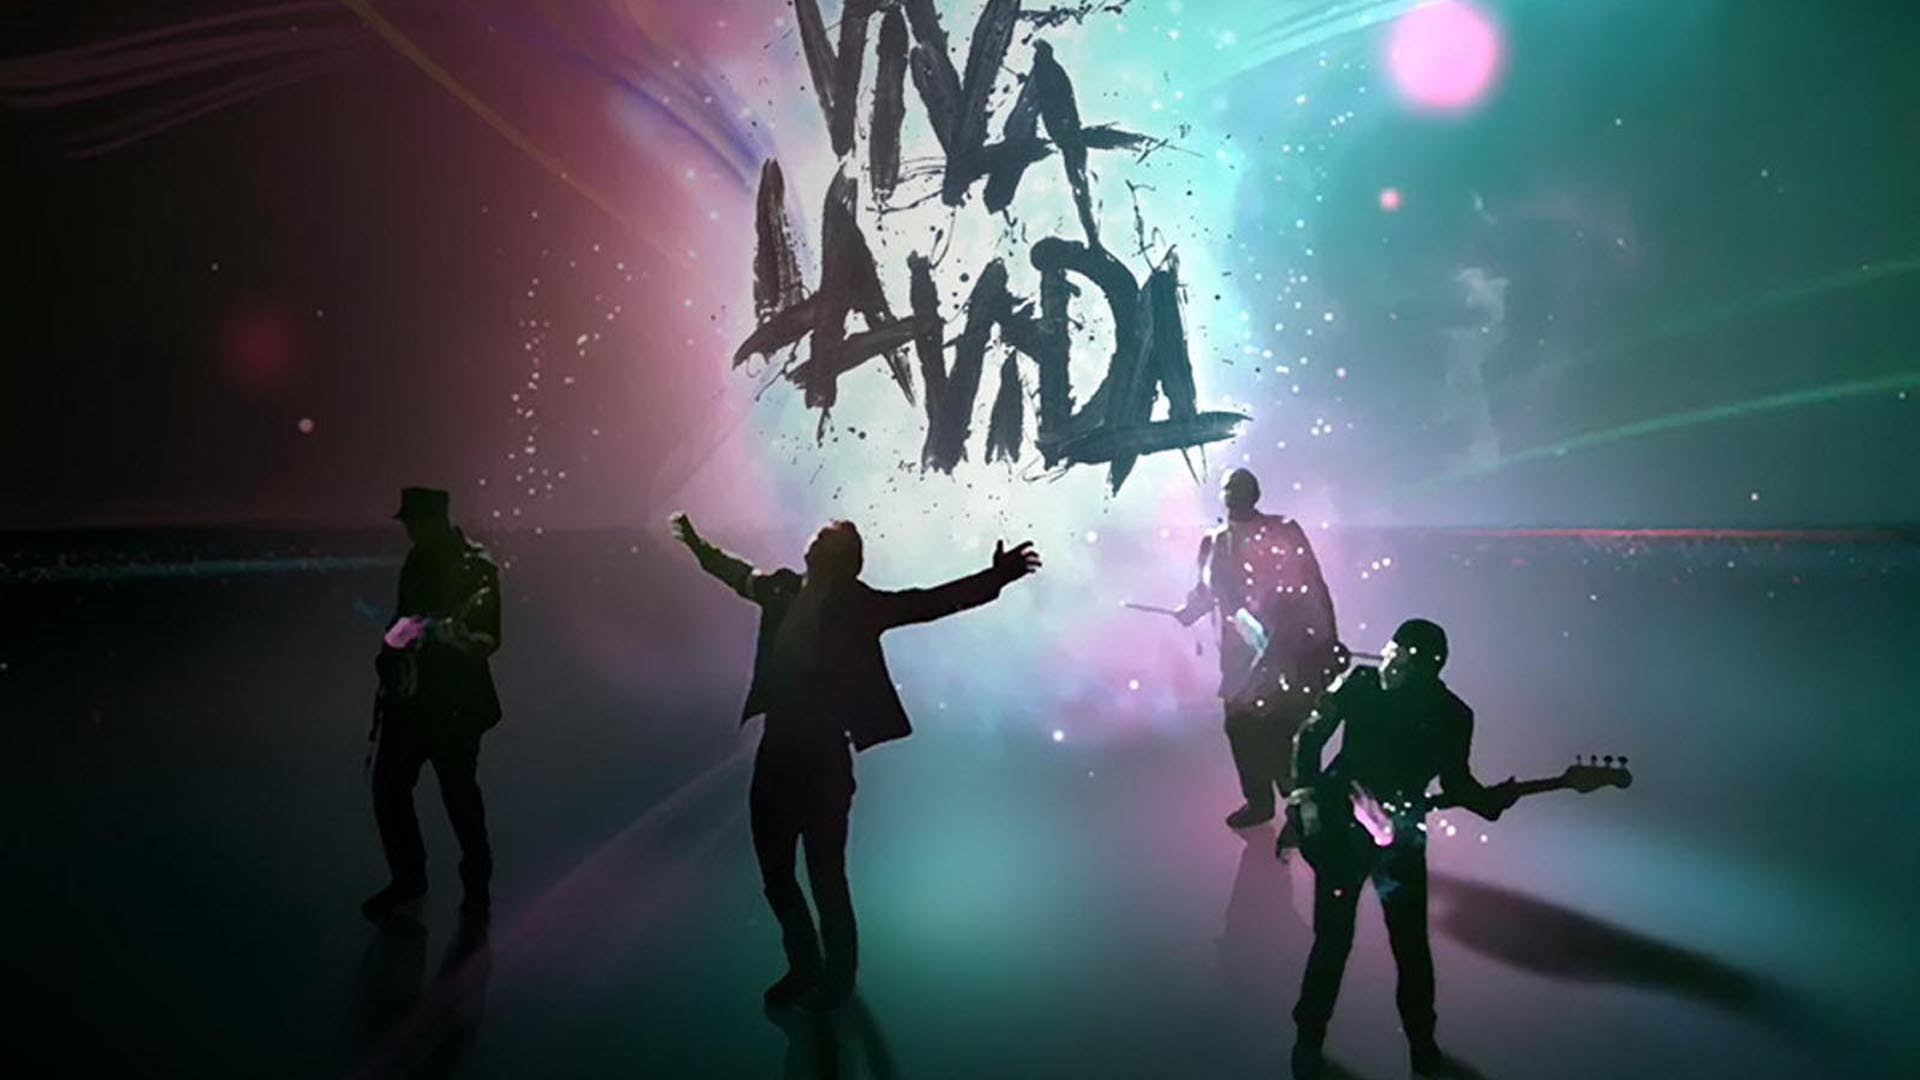 Coldplay Viva La Vida Multitrack [Remix Pack]